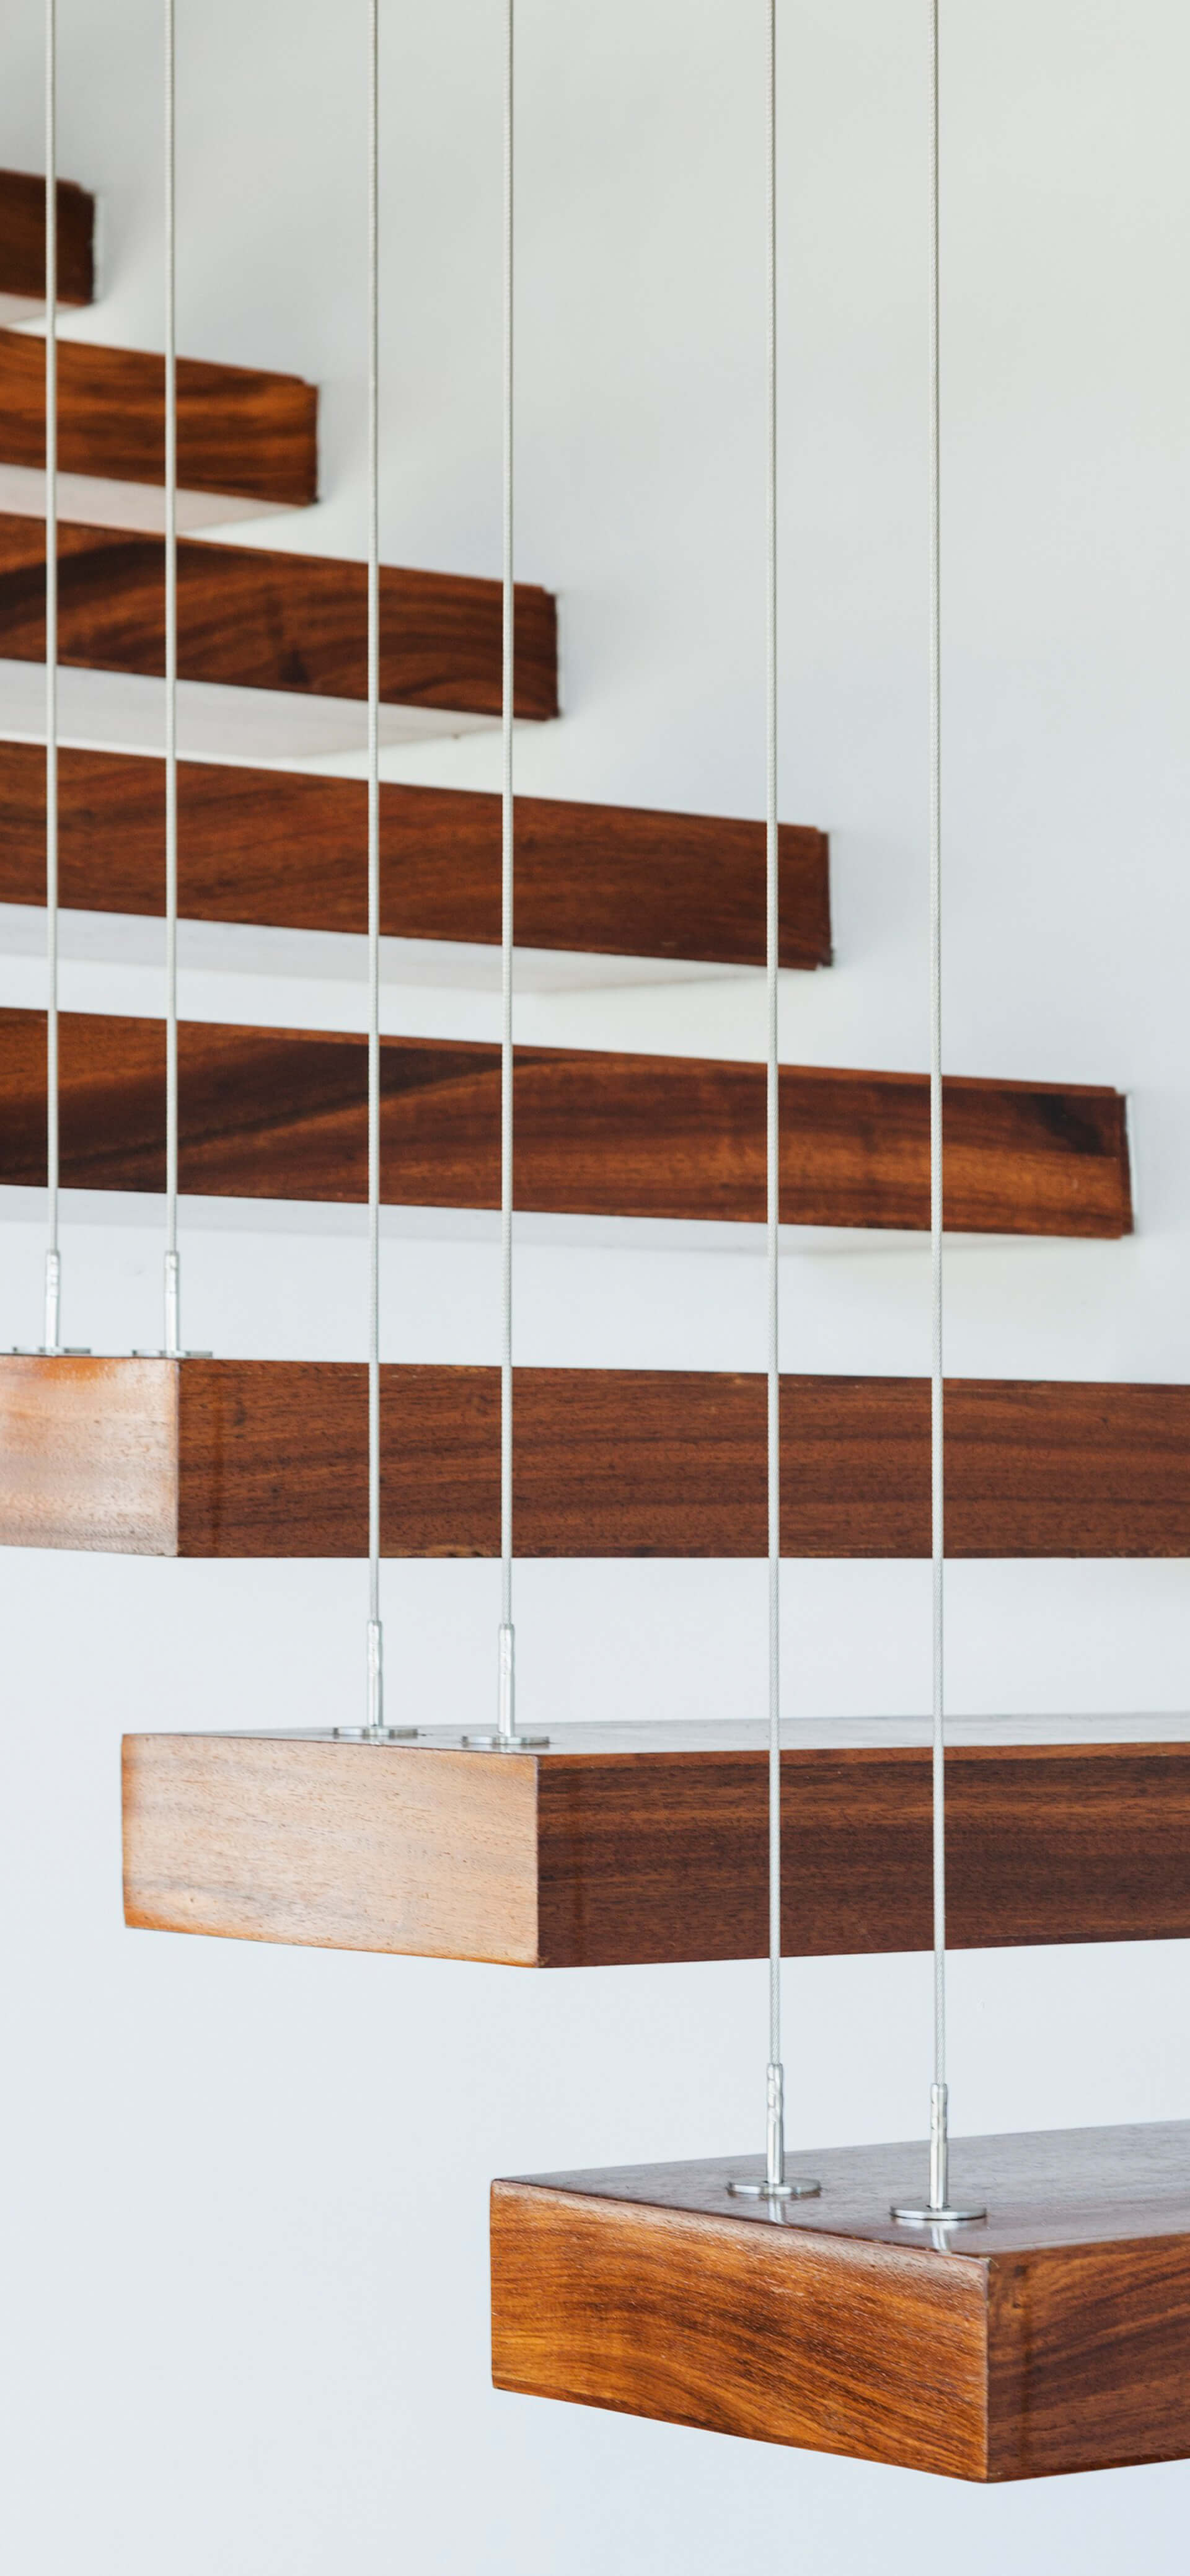 Floating wooden stairs being suspended by wires